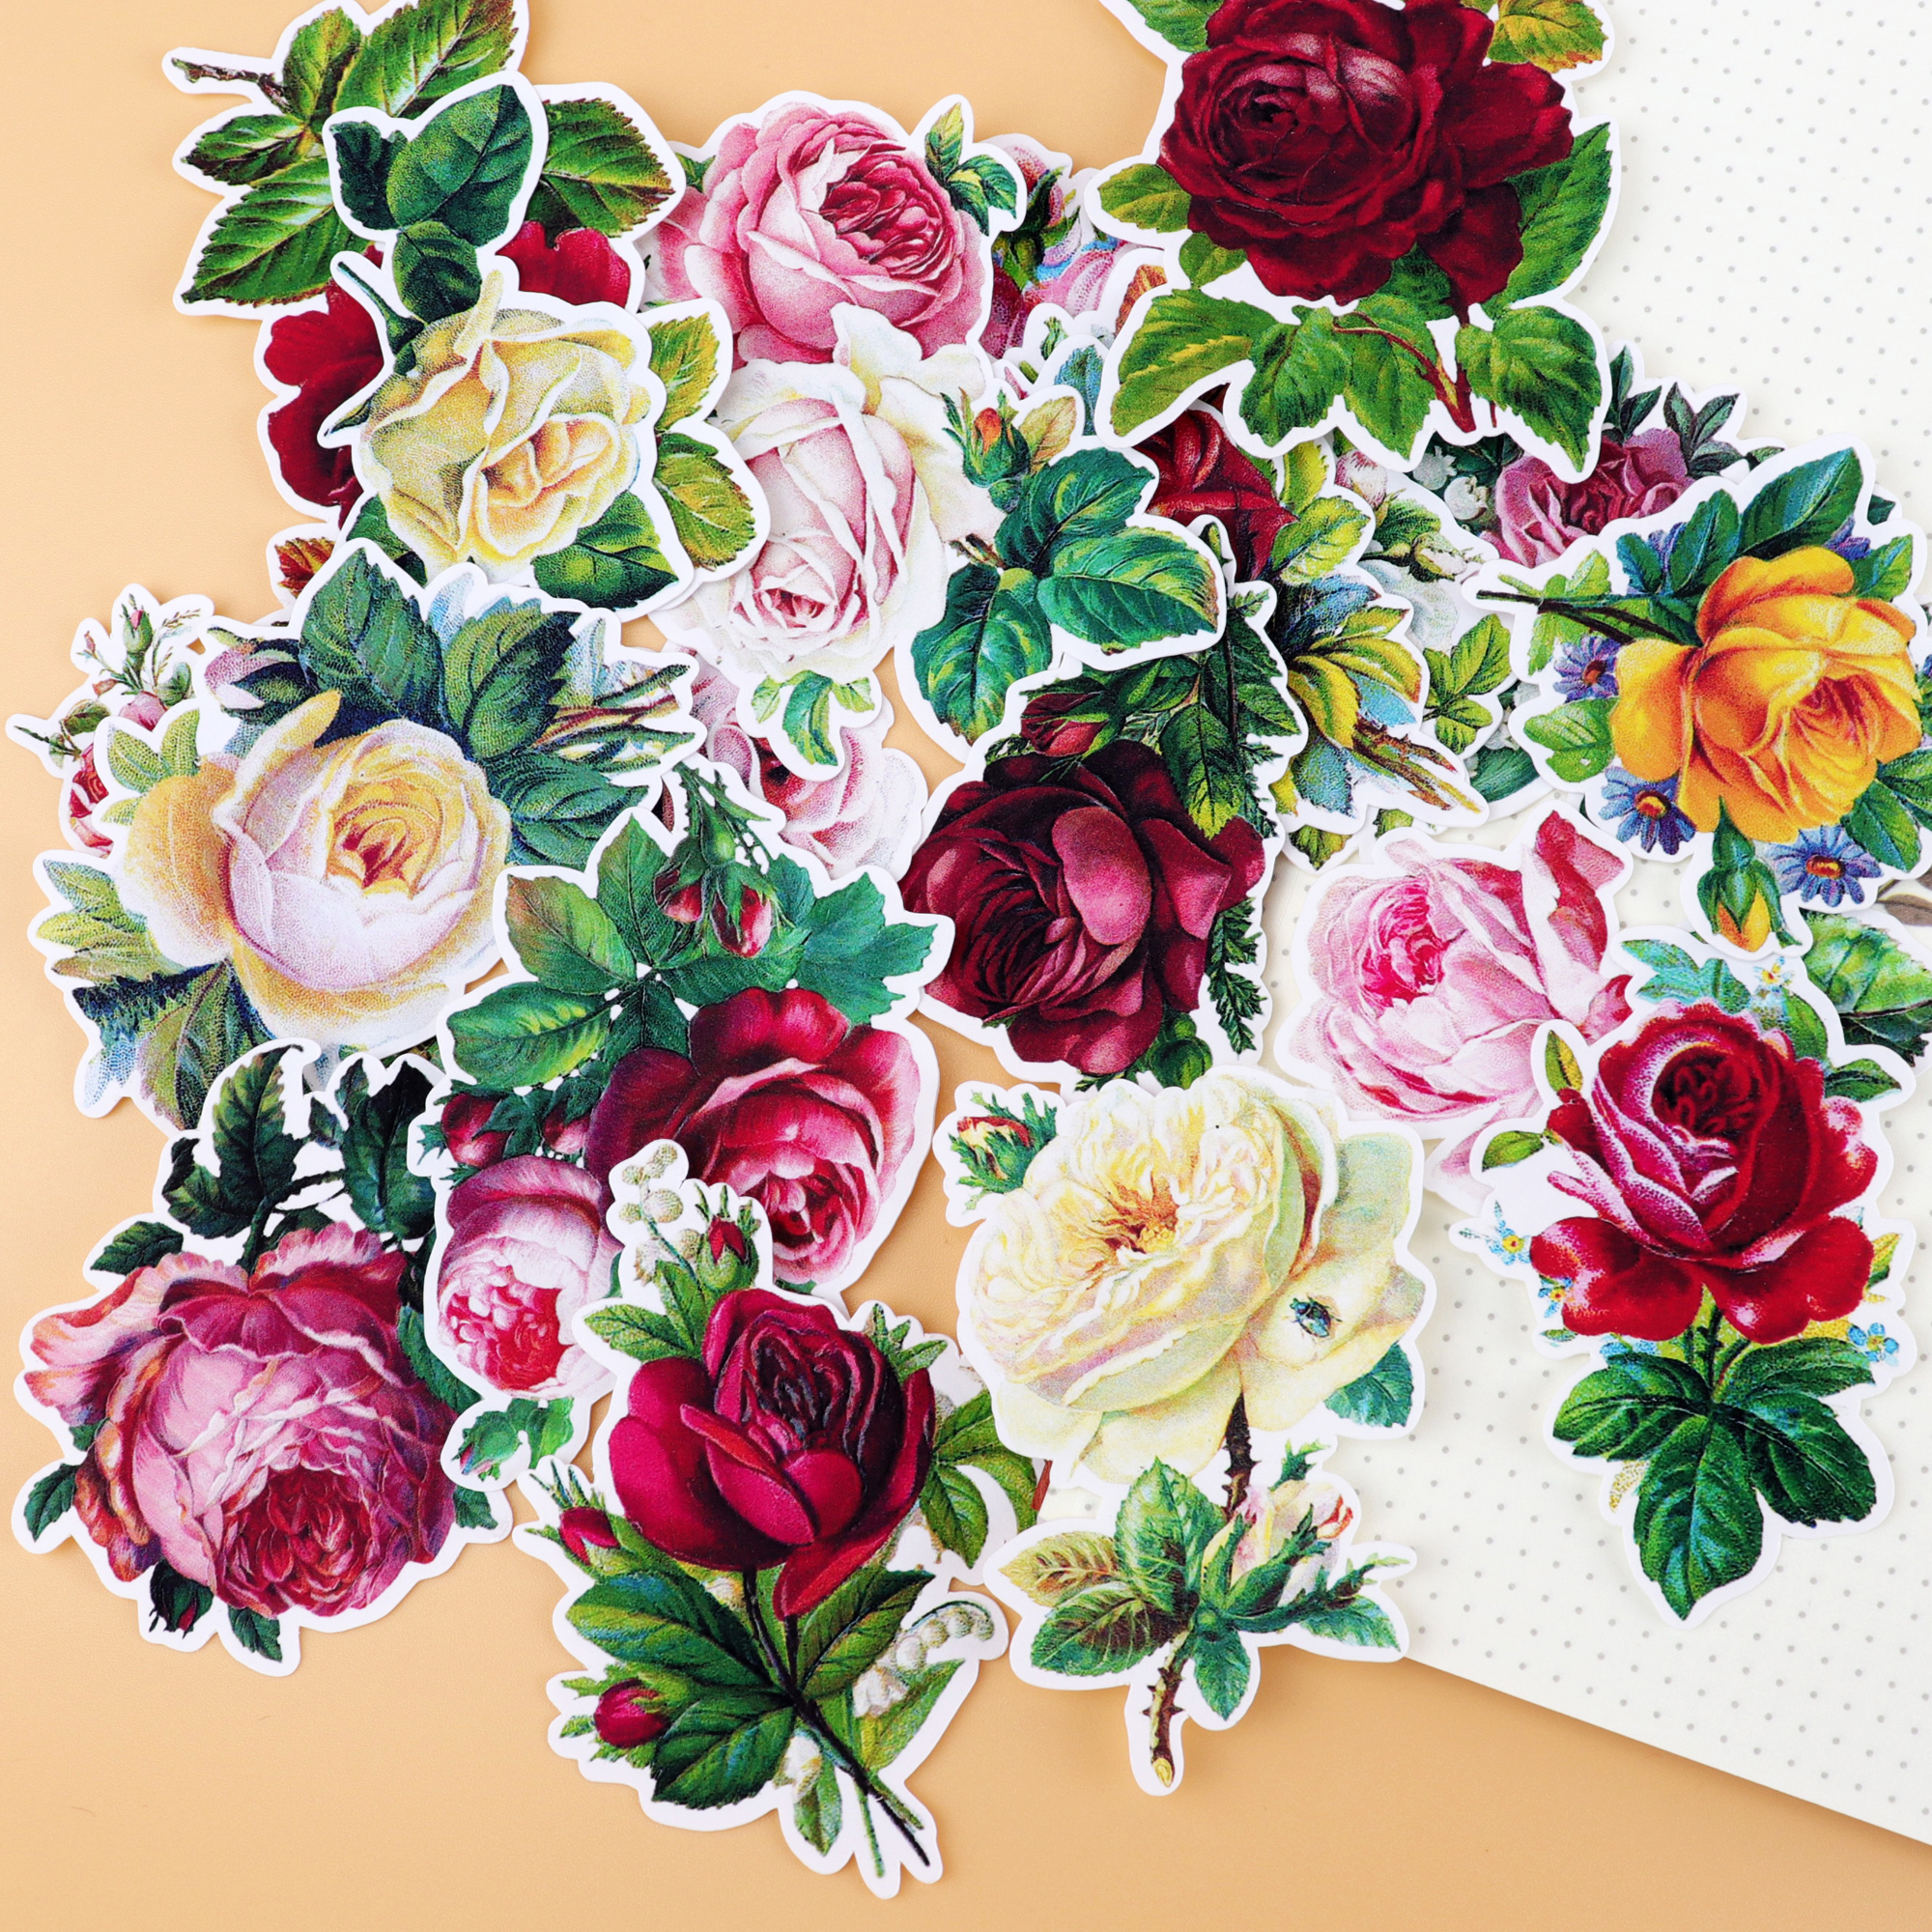 19pcs Lovely Small Flowers And Rose Stickers Scrapbooking Pegatinas Stationery Bullet Journal Kawaii Papelaria Notebook Sticker